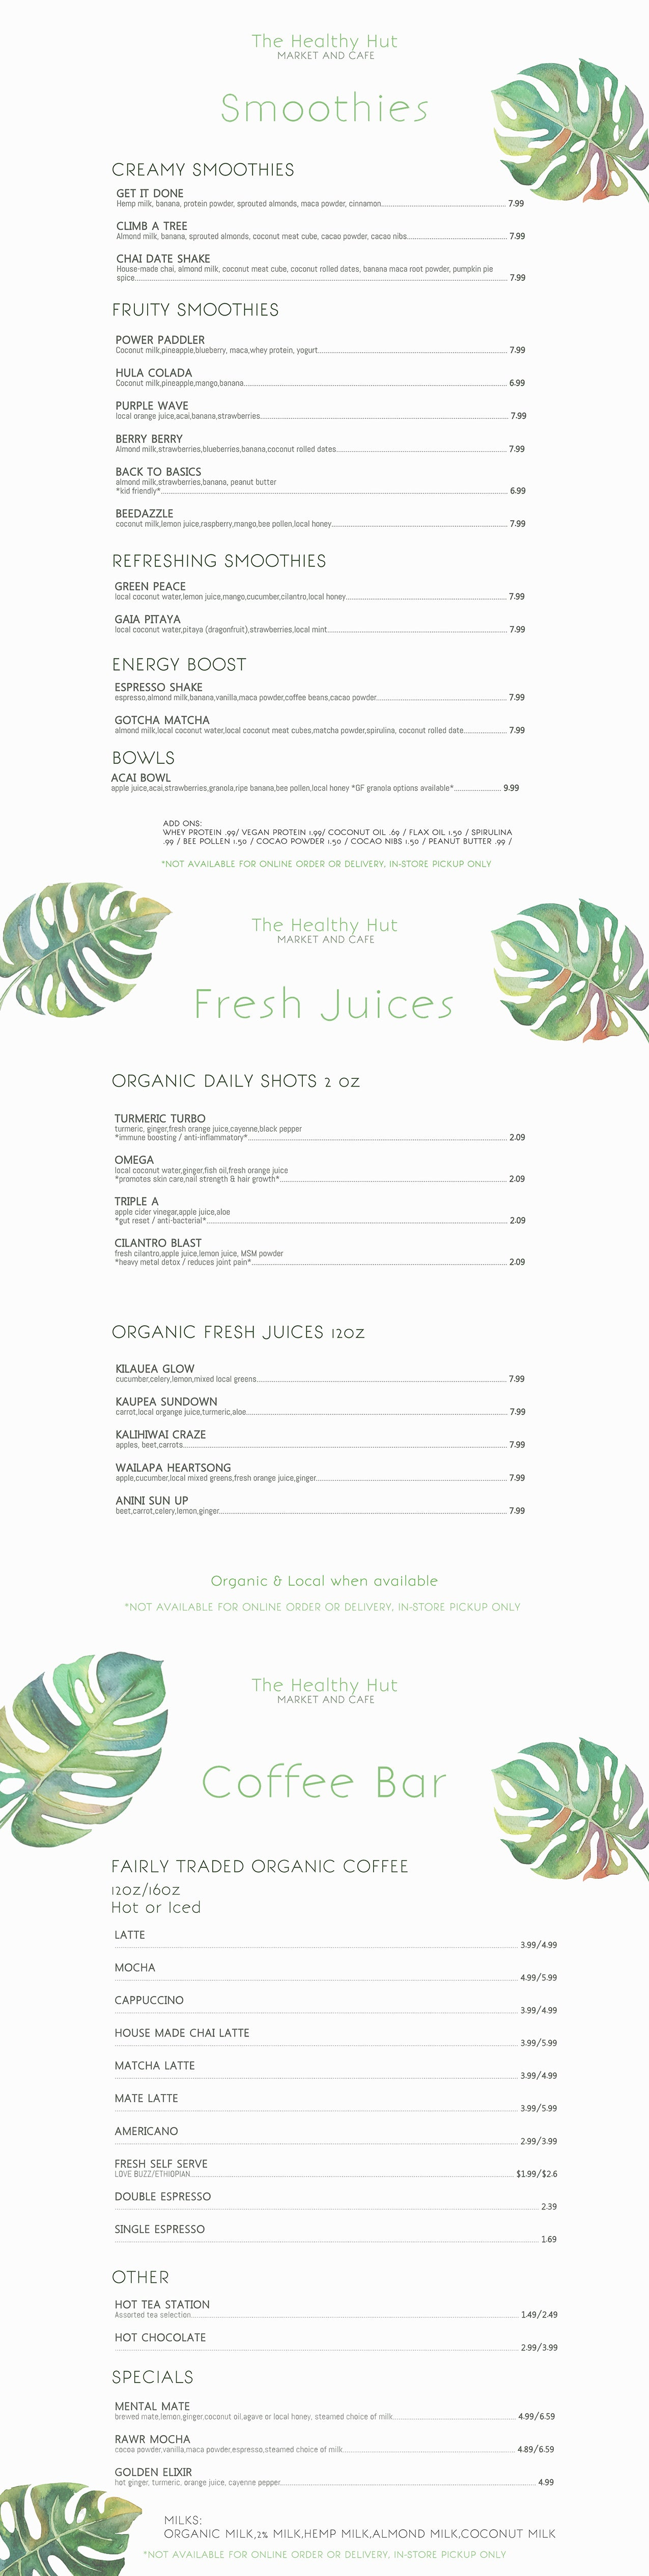 Healthy Hut, market and cafe, kauai, juice bar, coffee bar, health, wellness, hawaii, local, organic, grocery store